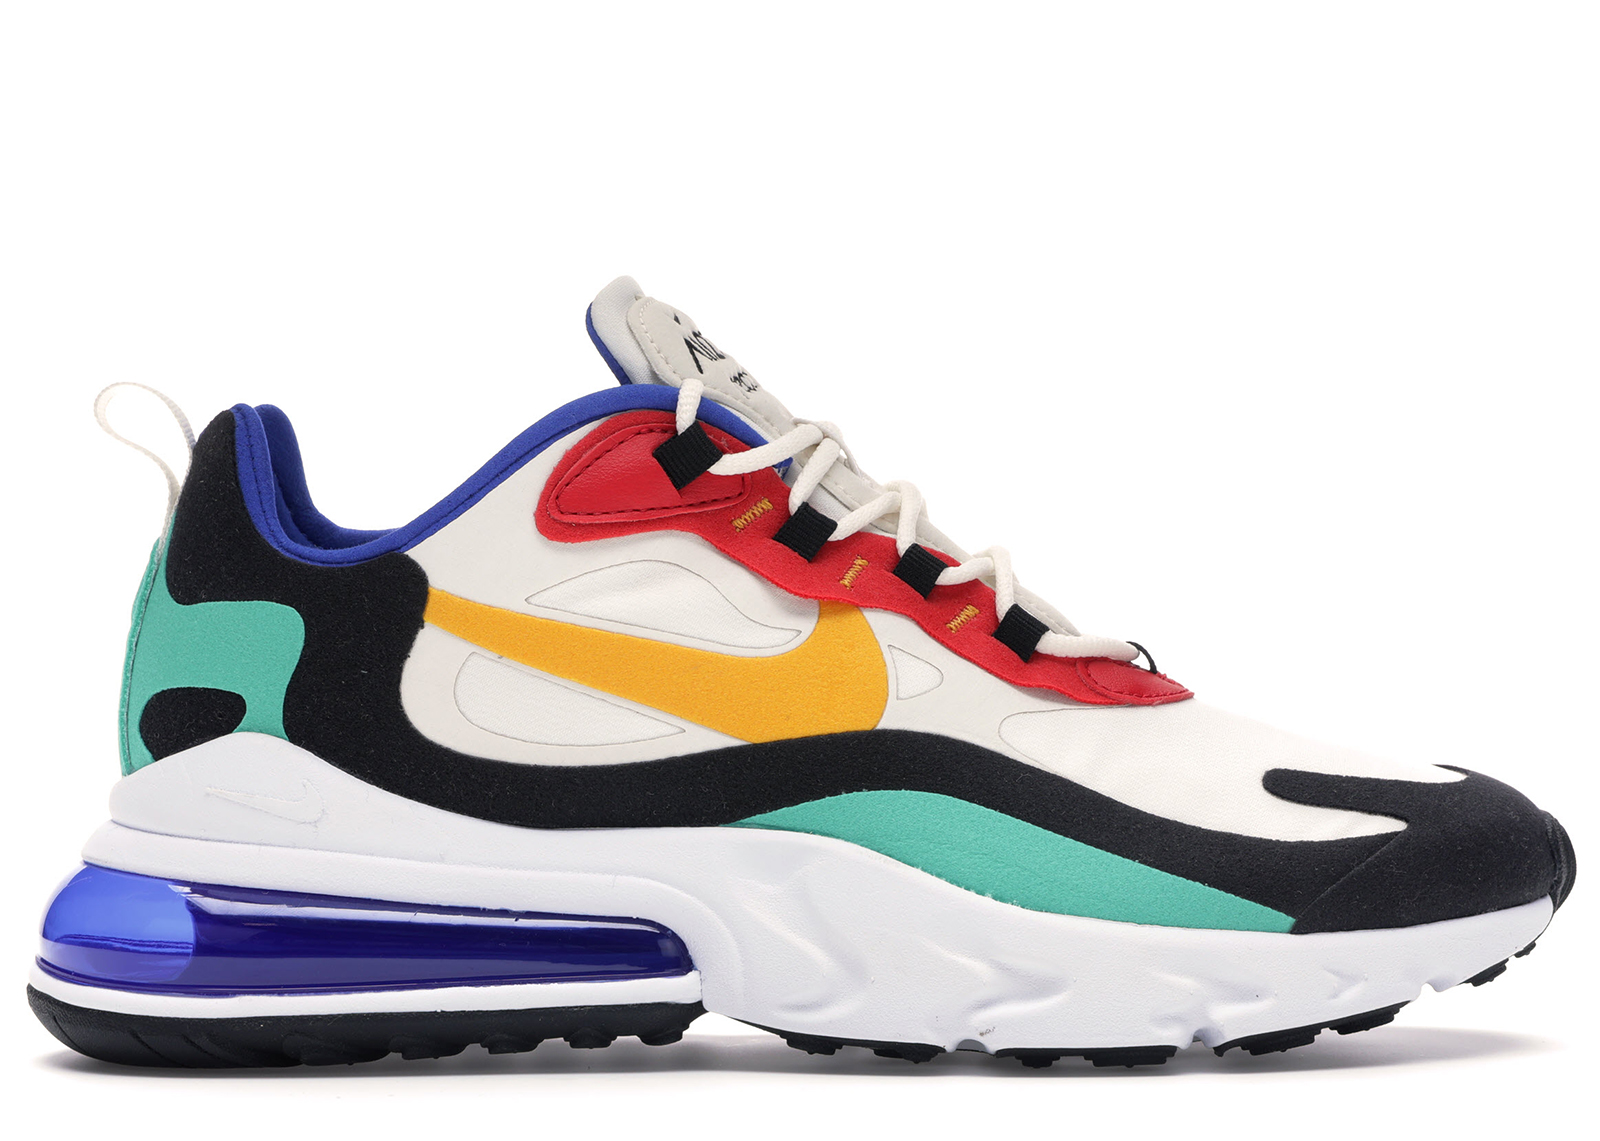 Nike Air Max 270 React Bauhaus - AO4971-002